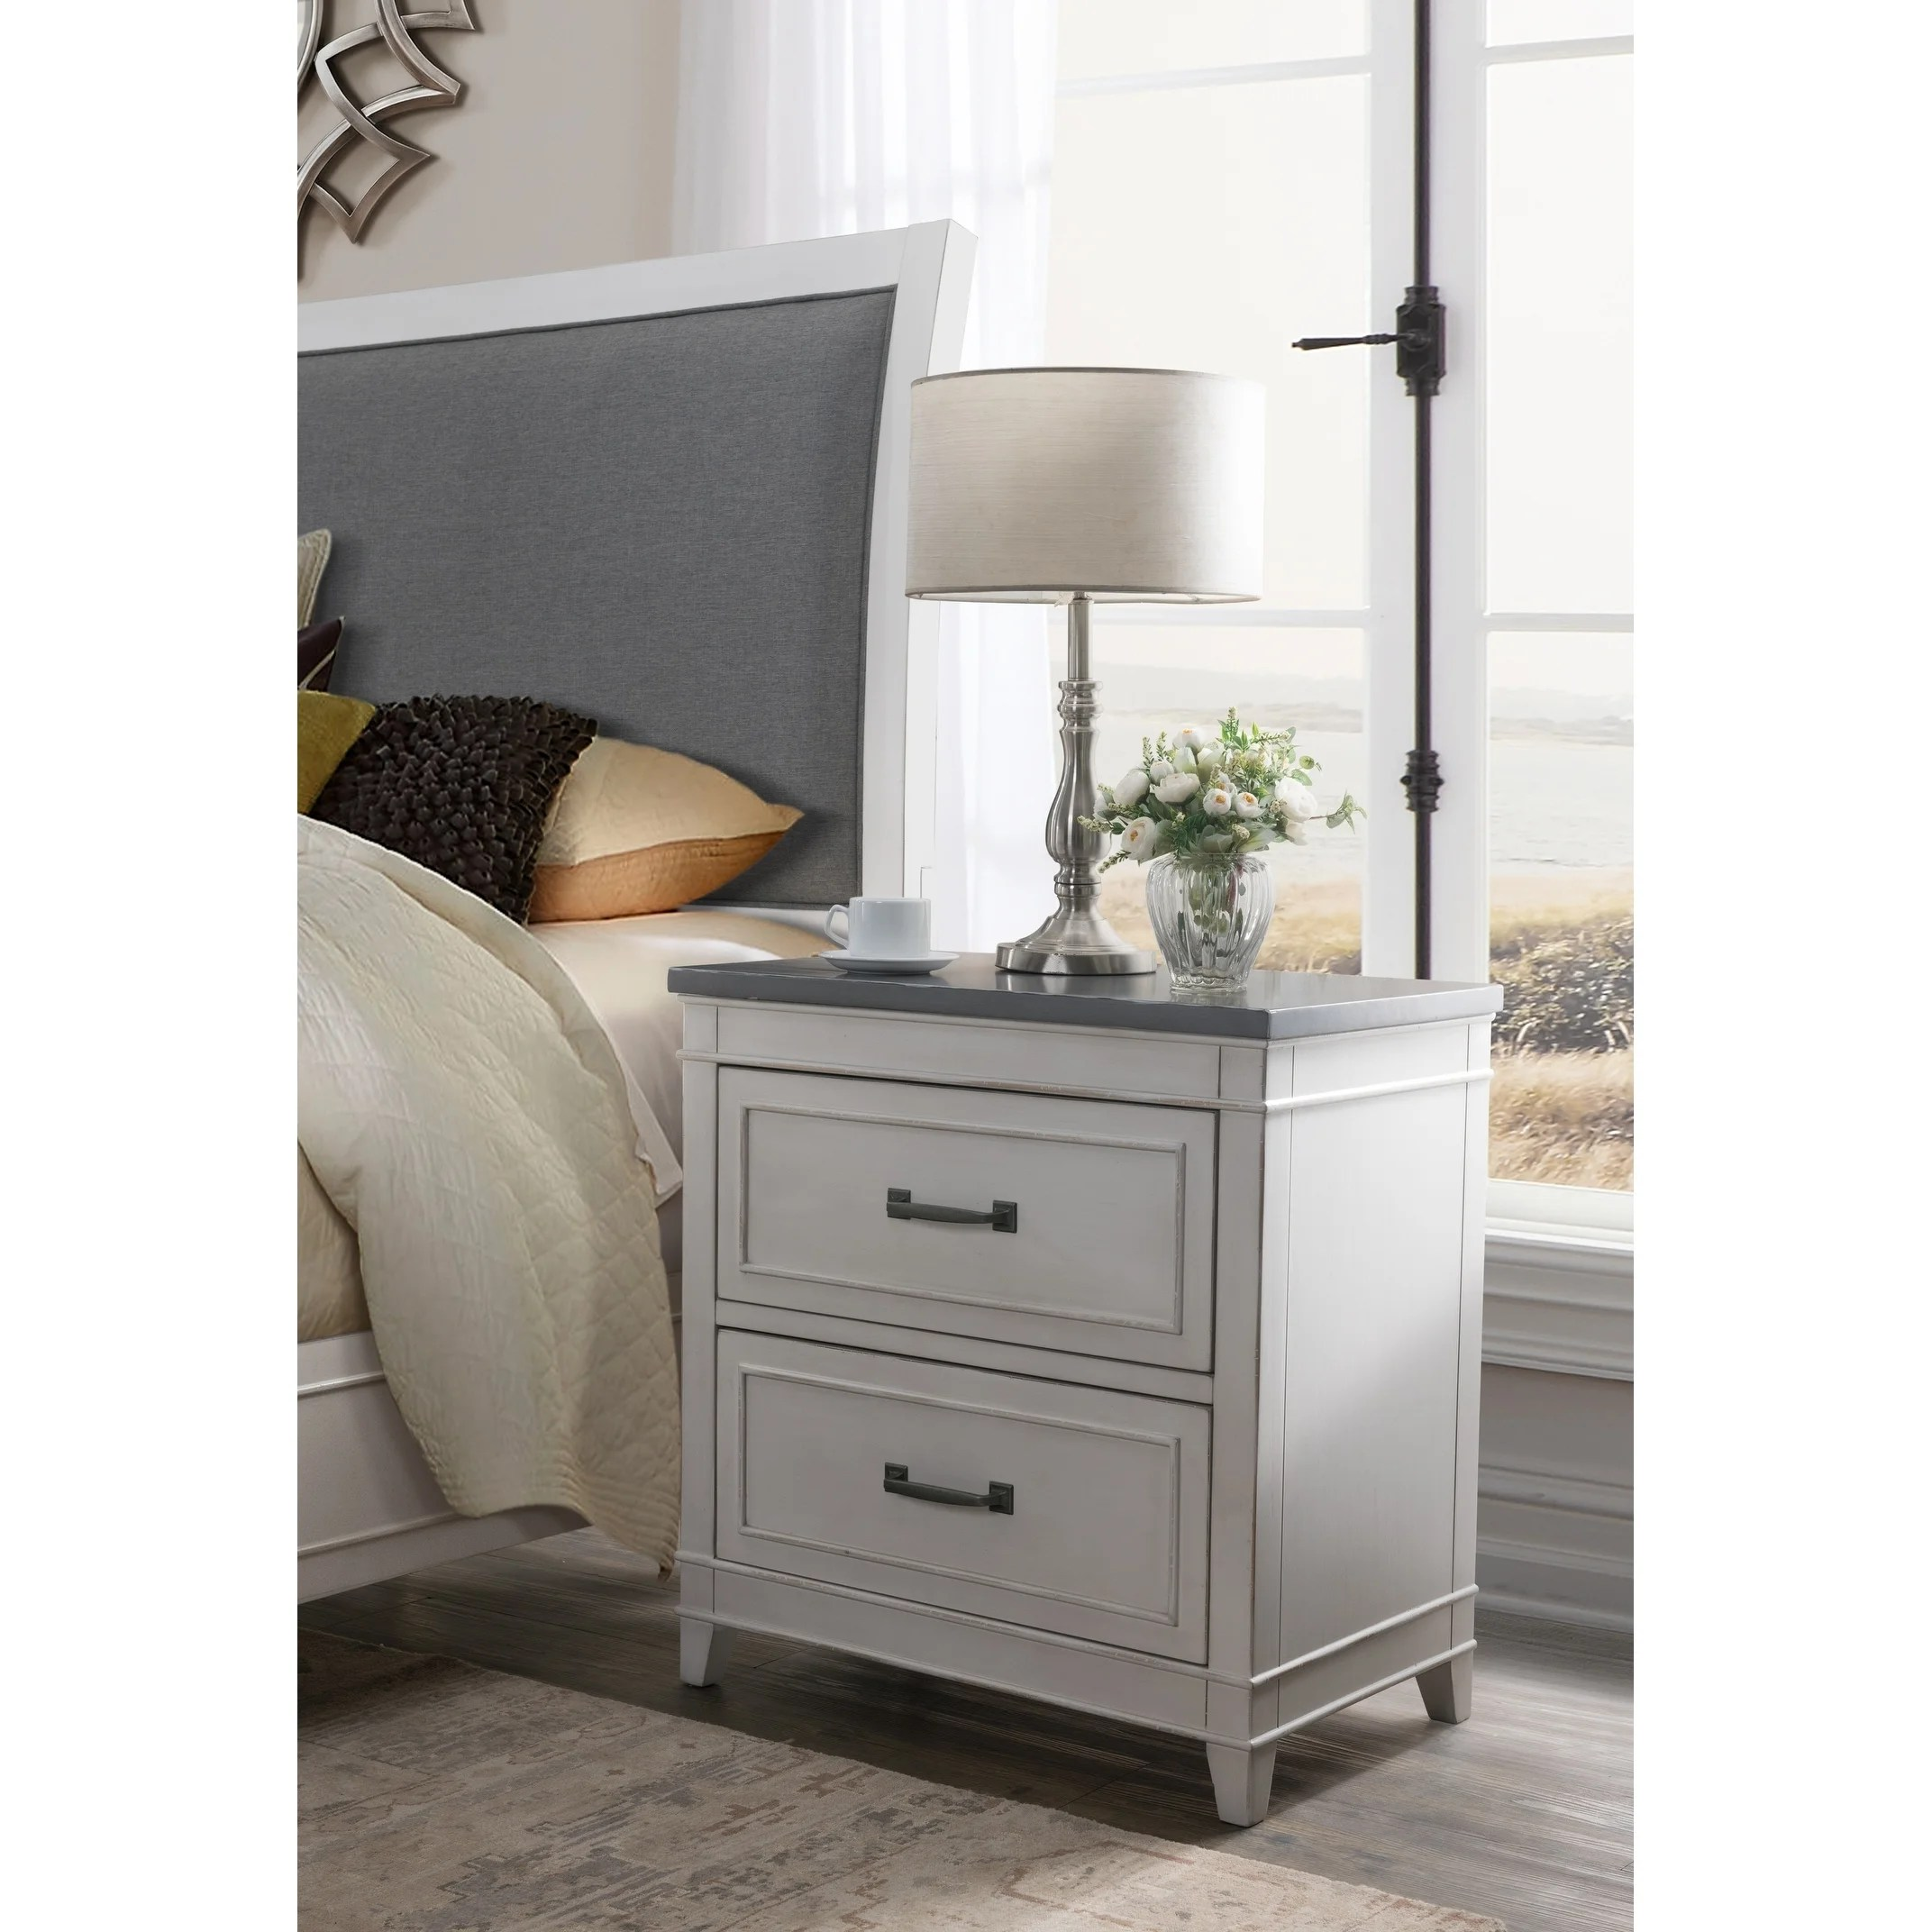 Martin Svensson Home Del Mar 2 Drawer Nightstand White With Grey Top